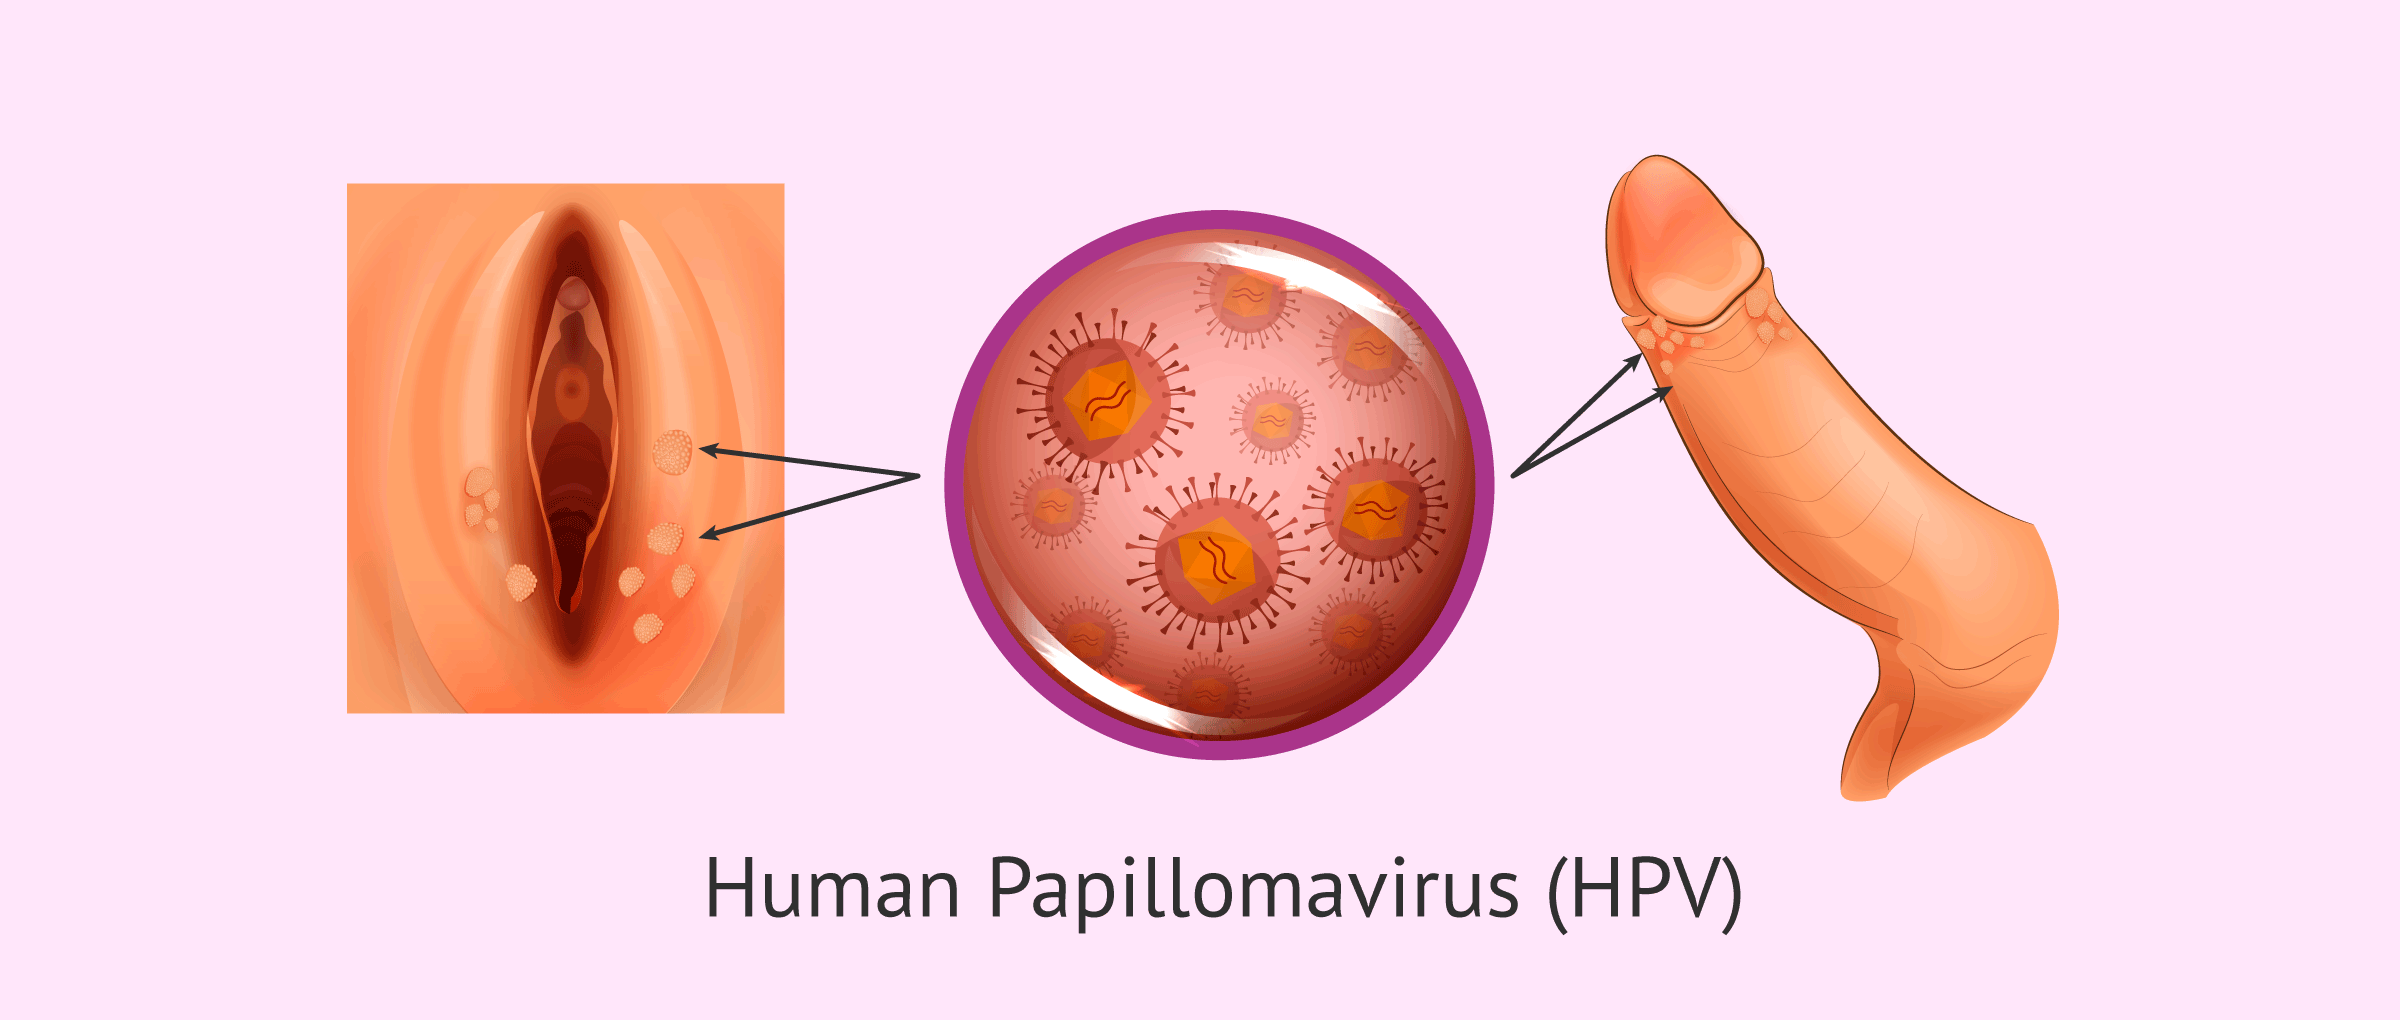 hpv that causes genital warts)